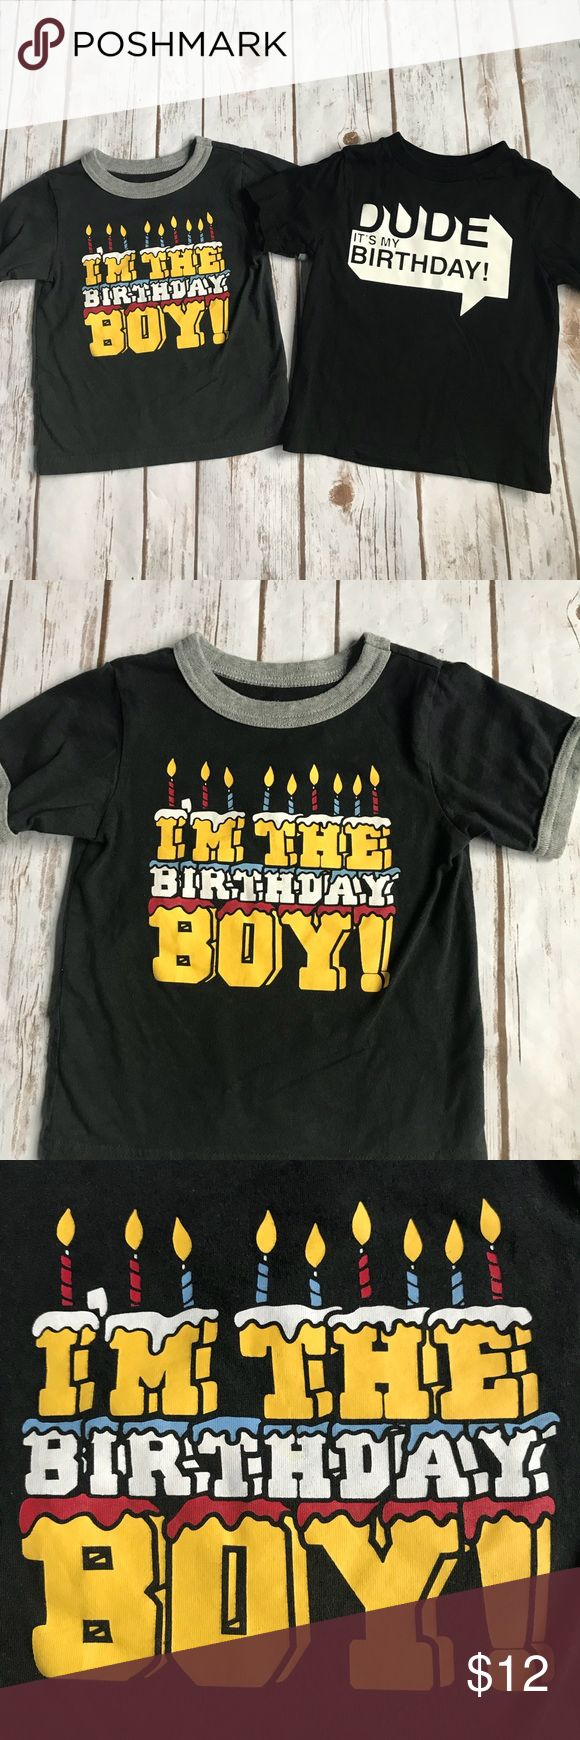 2 Toddler Boy Happy Birthday Tee Shirts GREAT USED CONDITION Both Are By The Childrens